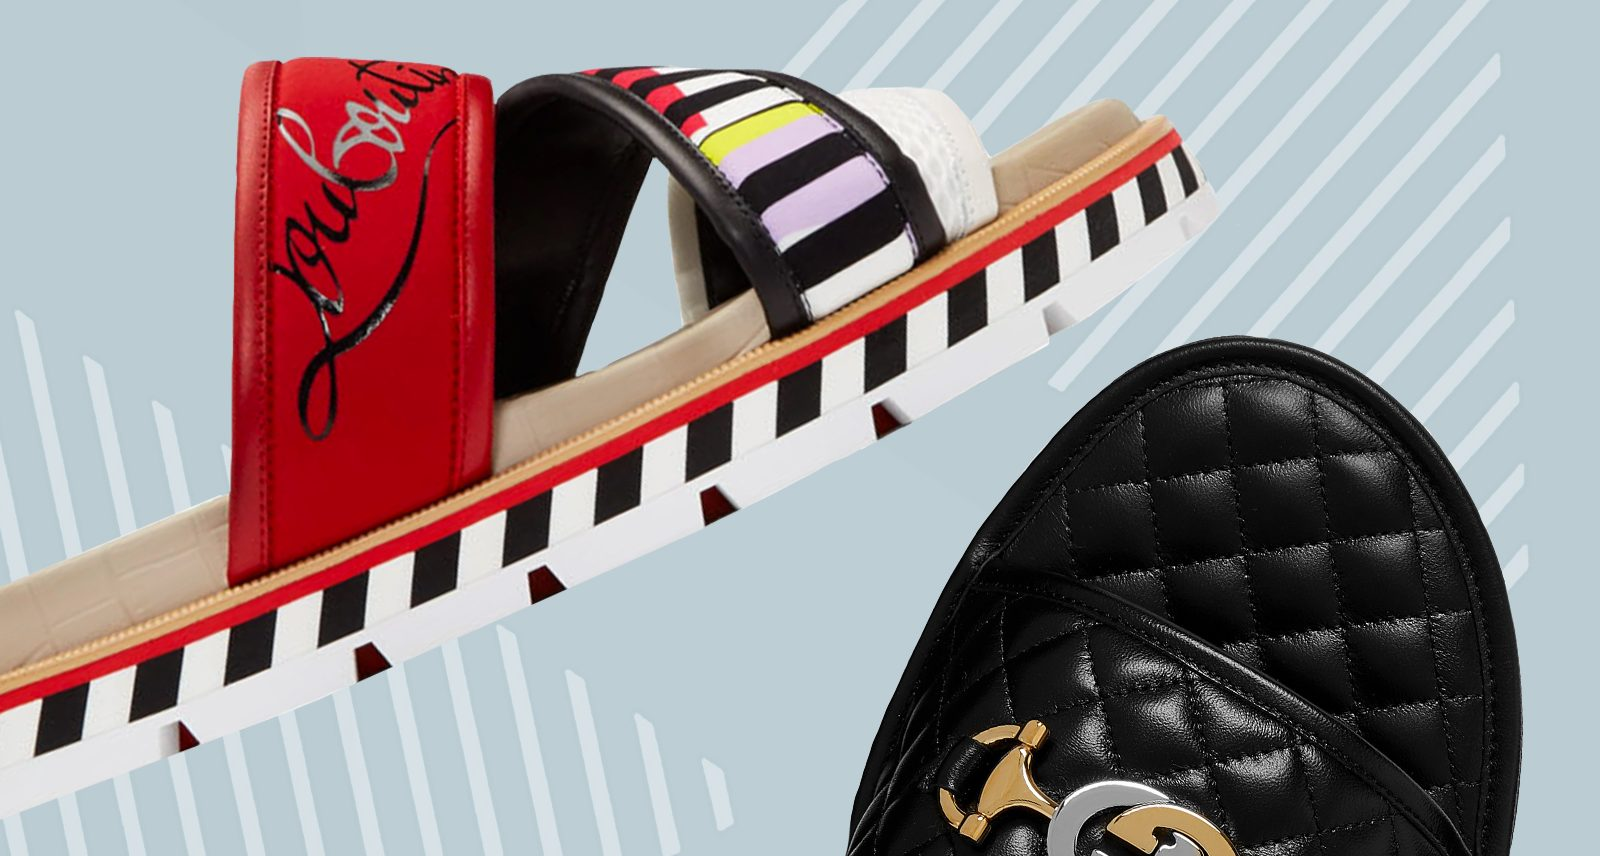 10 Slides That'll Give Your Feet the Drop-Top Swagger They Deserve